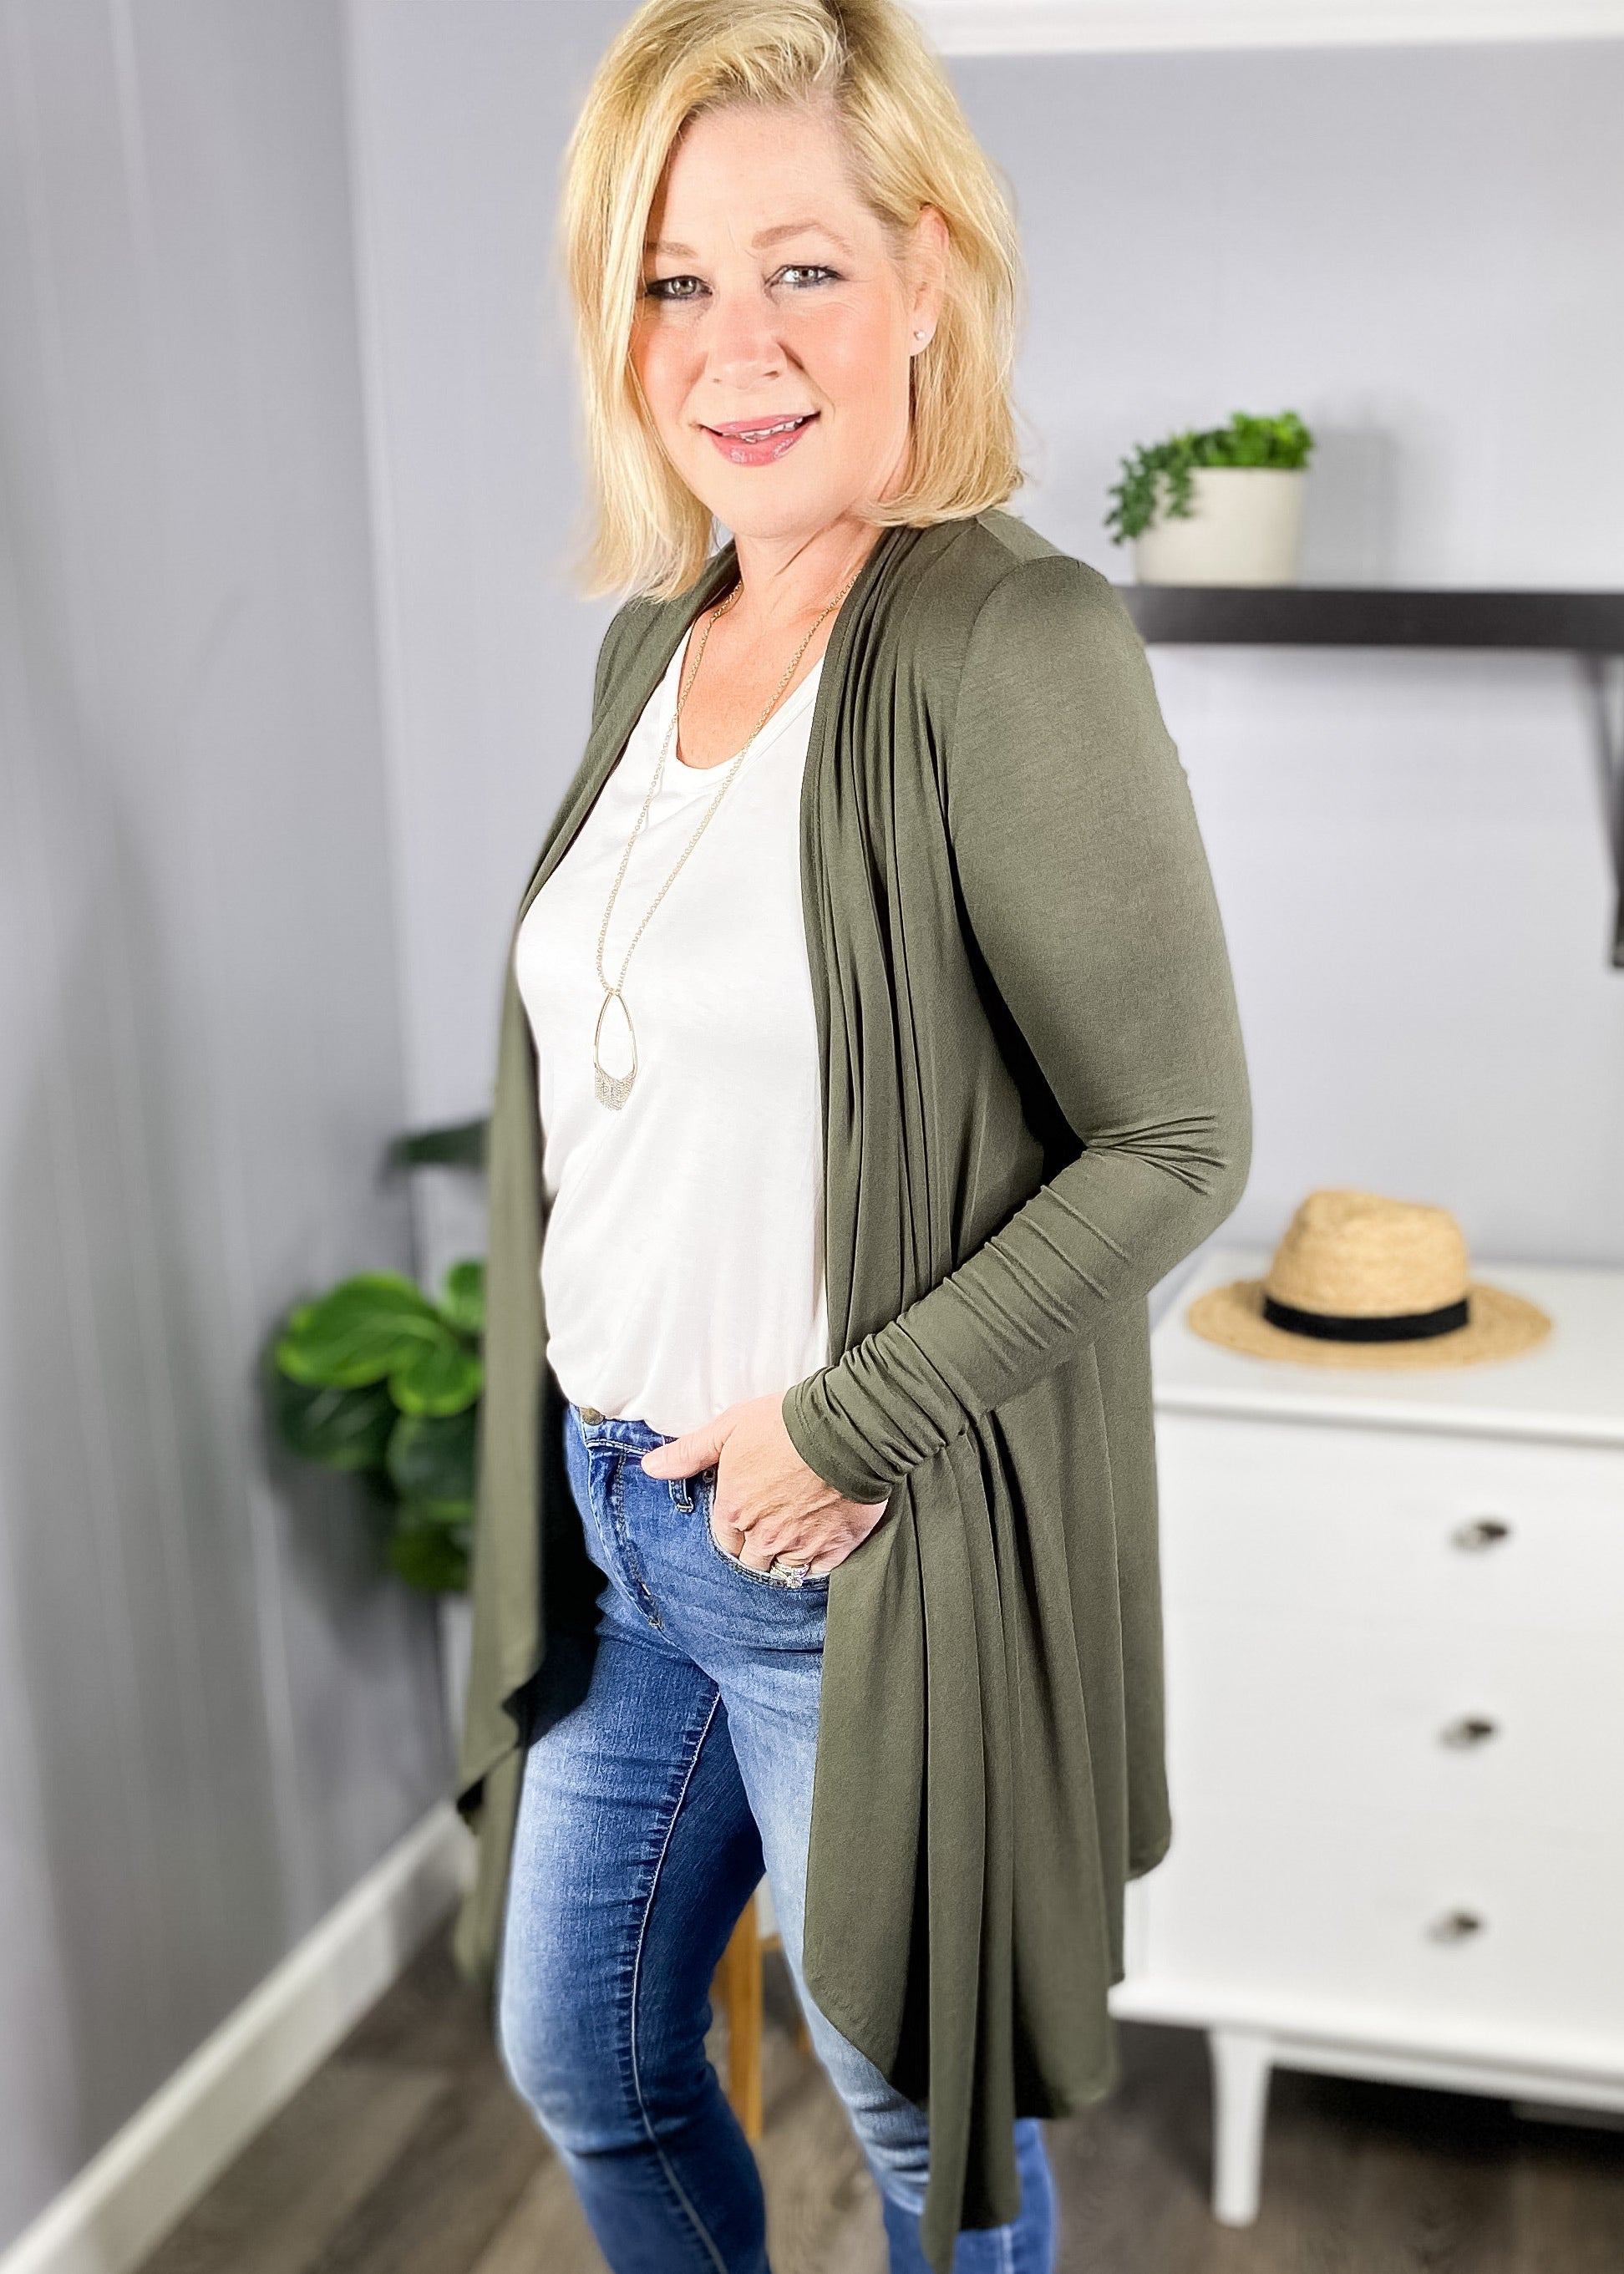 Cascading open feont cardigan in olive at L.E & CO Boutique an online clothing store for women.